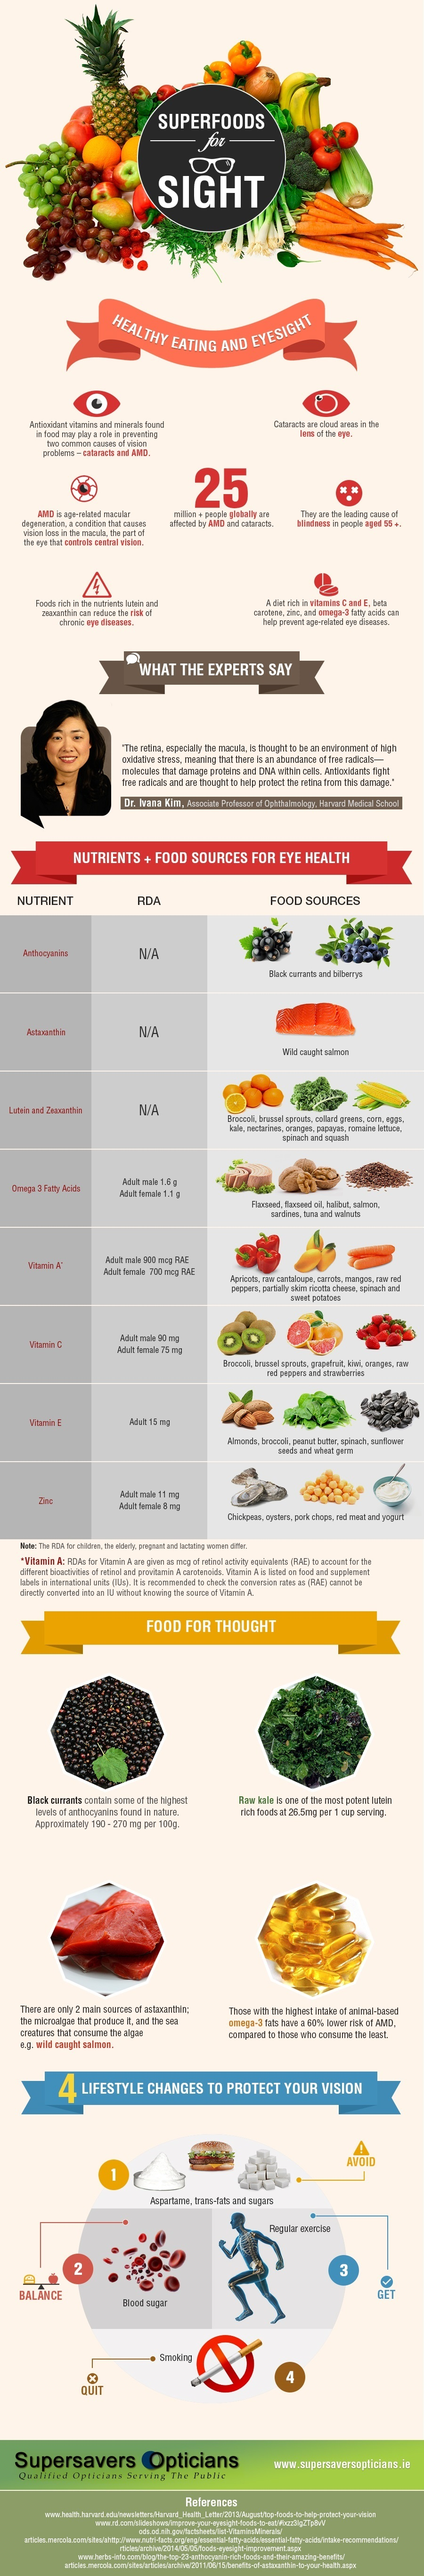 Superfoods-for-Sight-Infographic